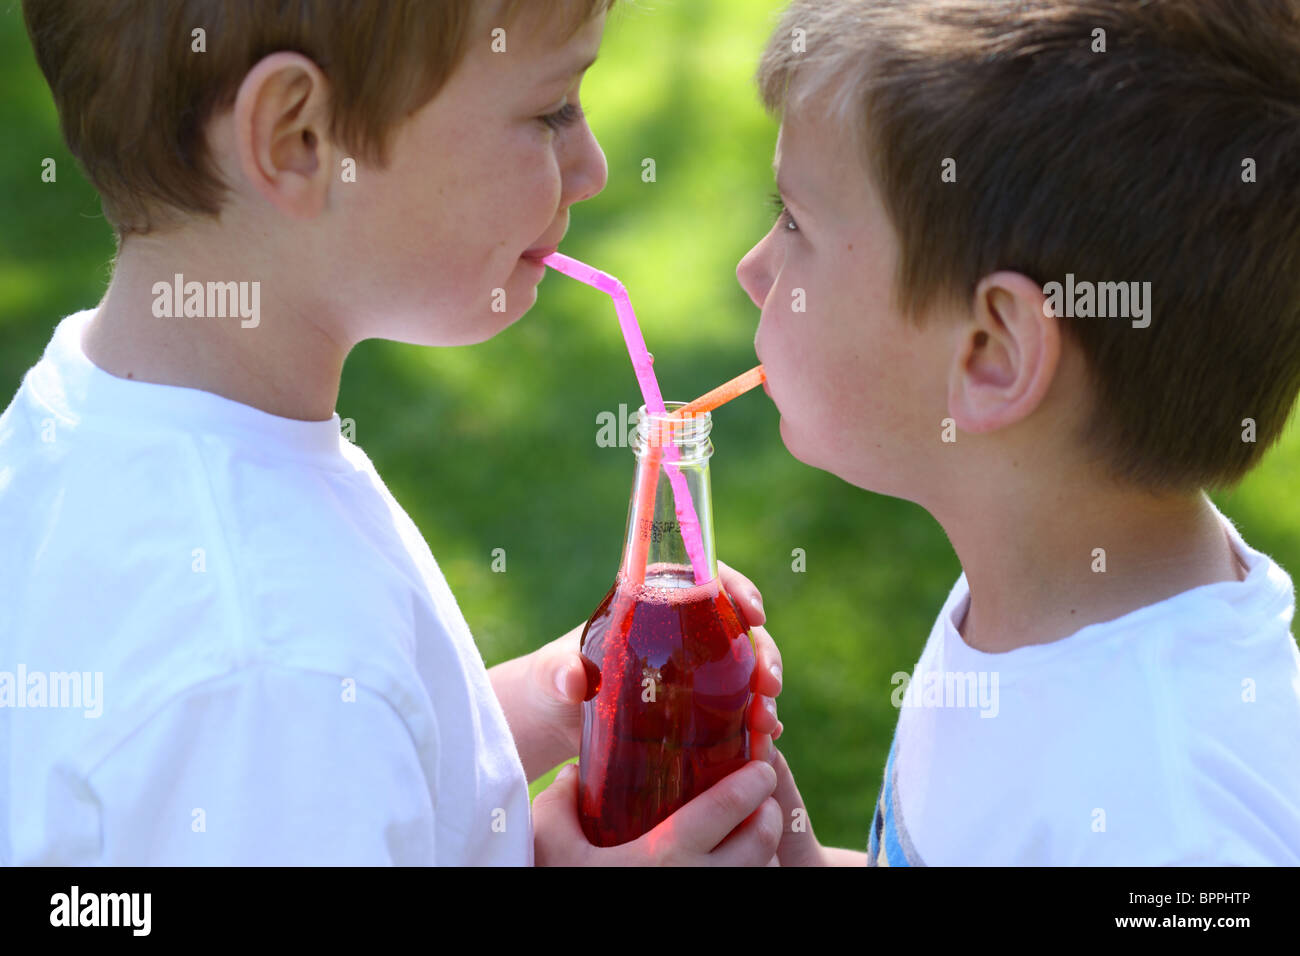 Two young boys sharing bottle of soda - Stock Image